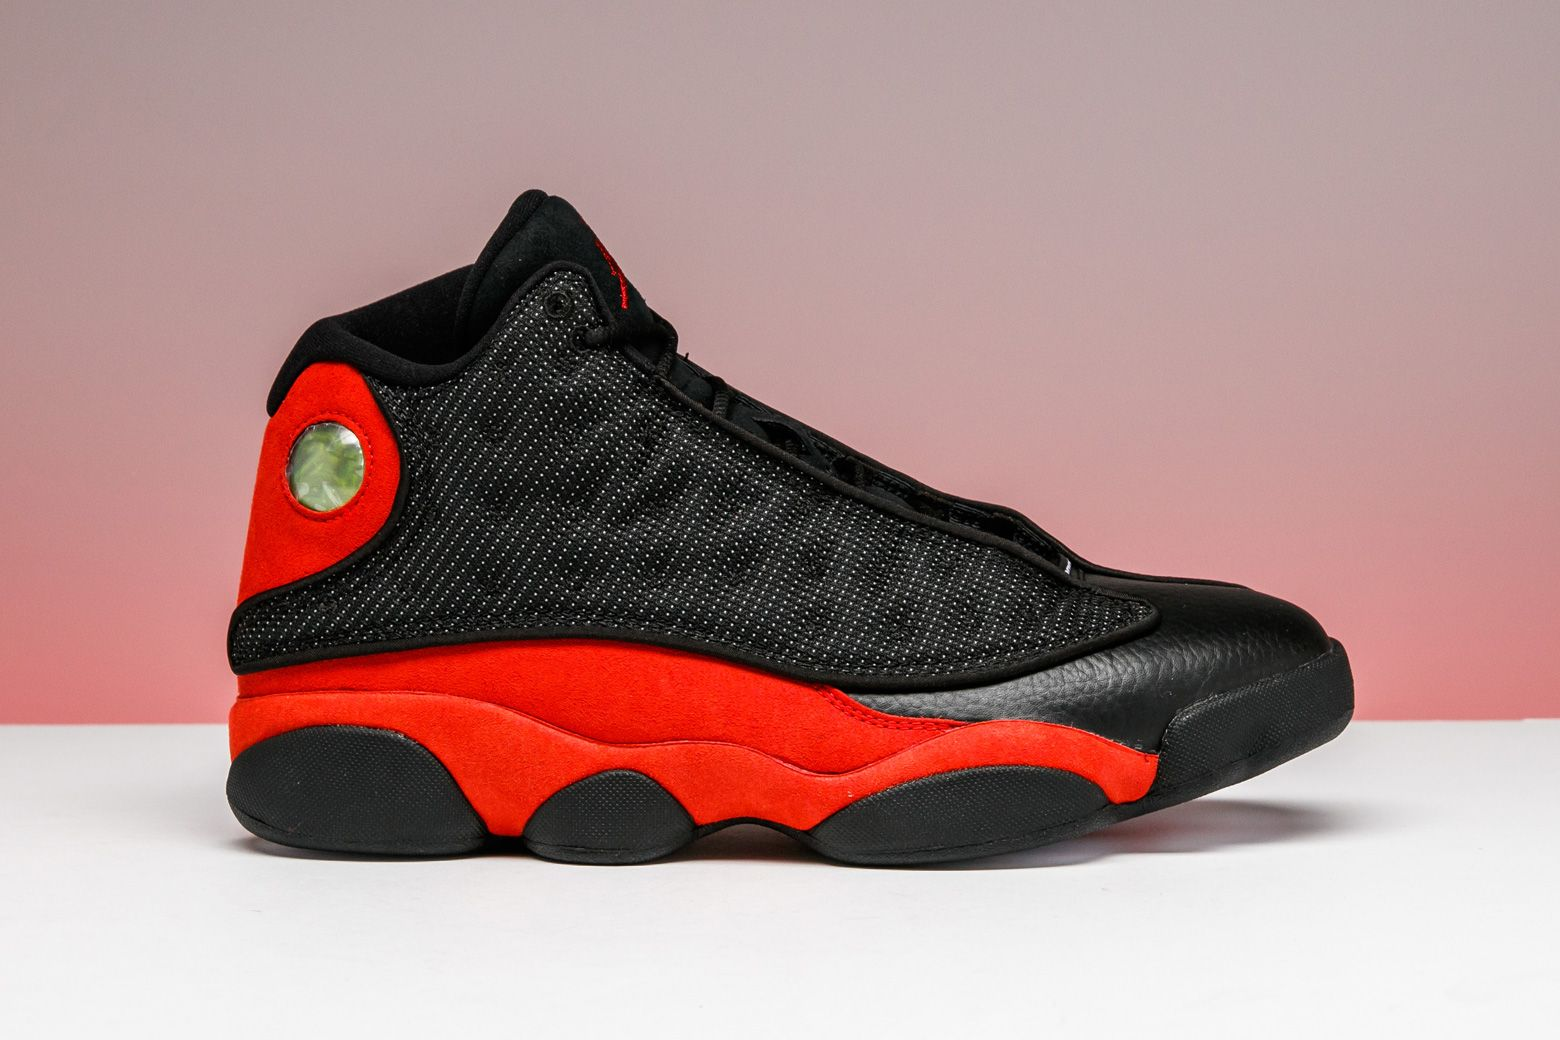 c7a916d14293 SG EARLY ACCESS  The 2017 Air Jordan 13